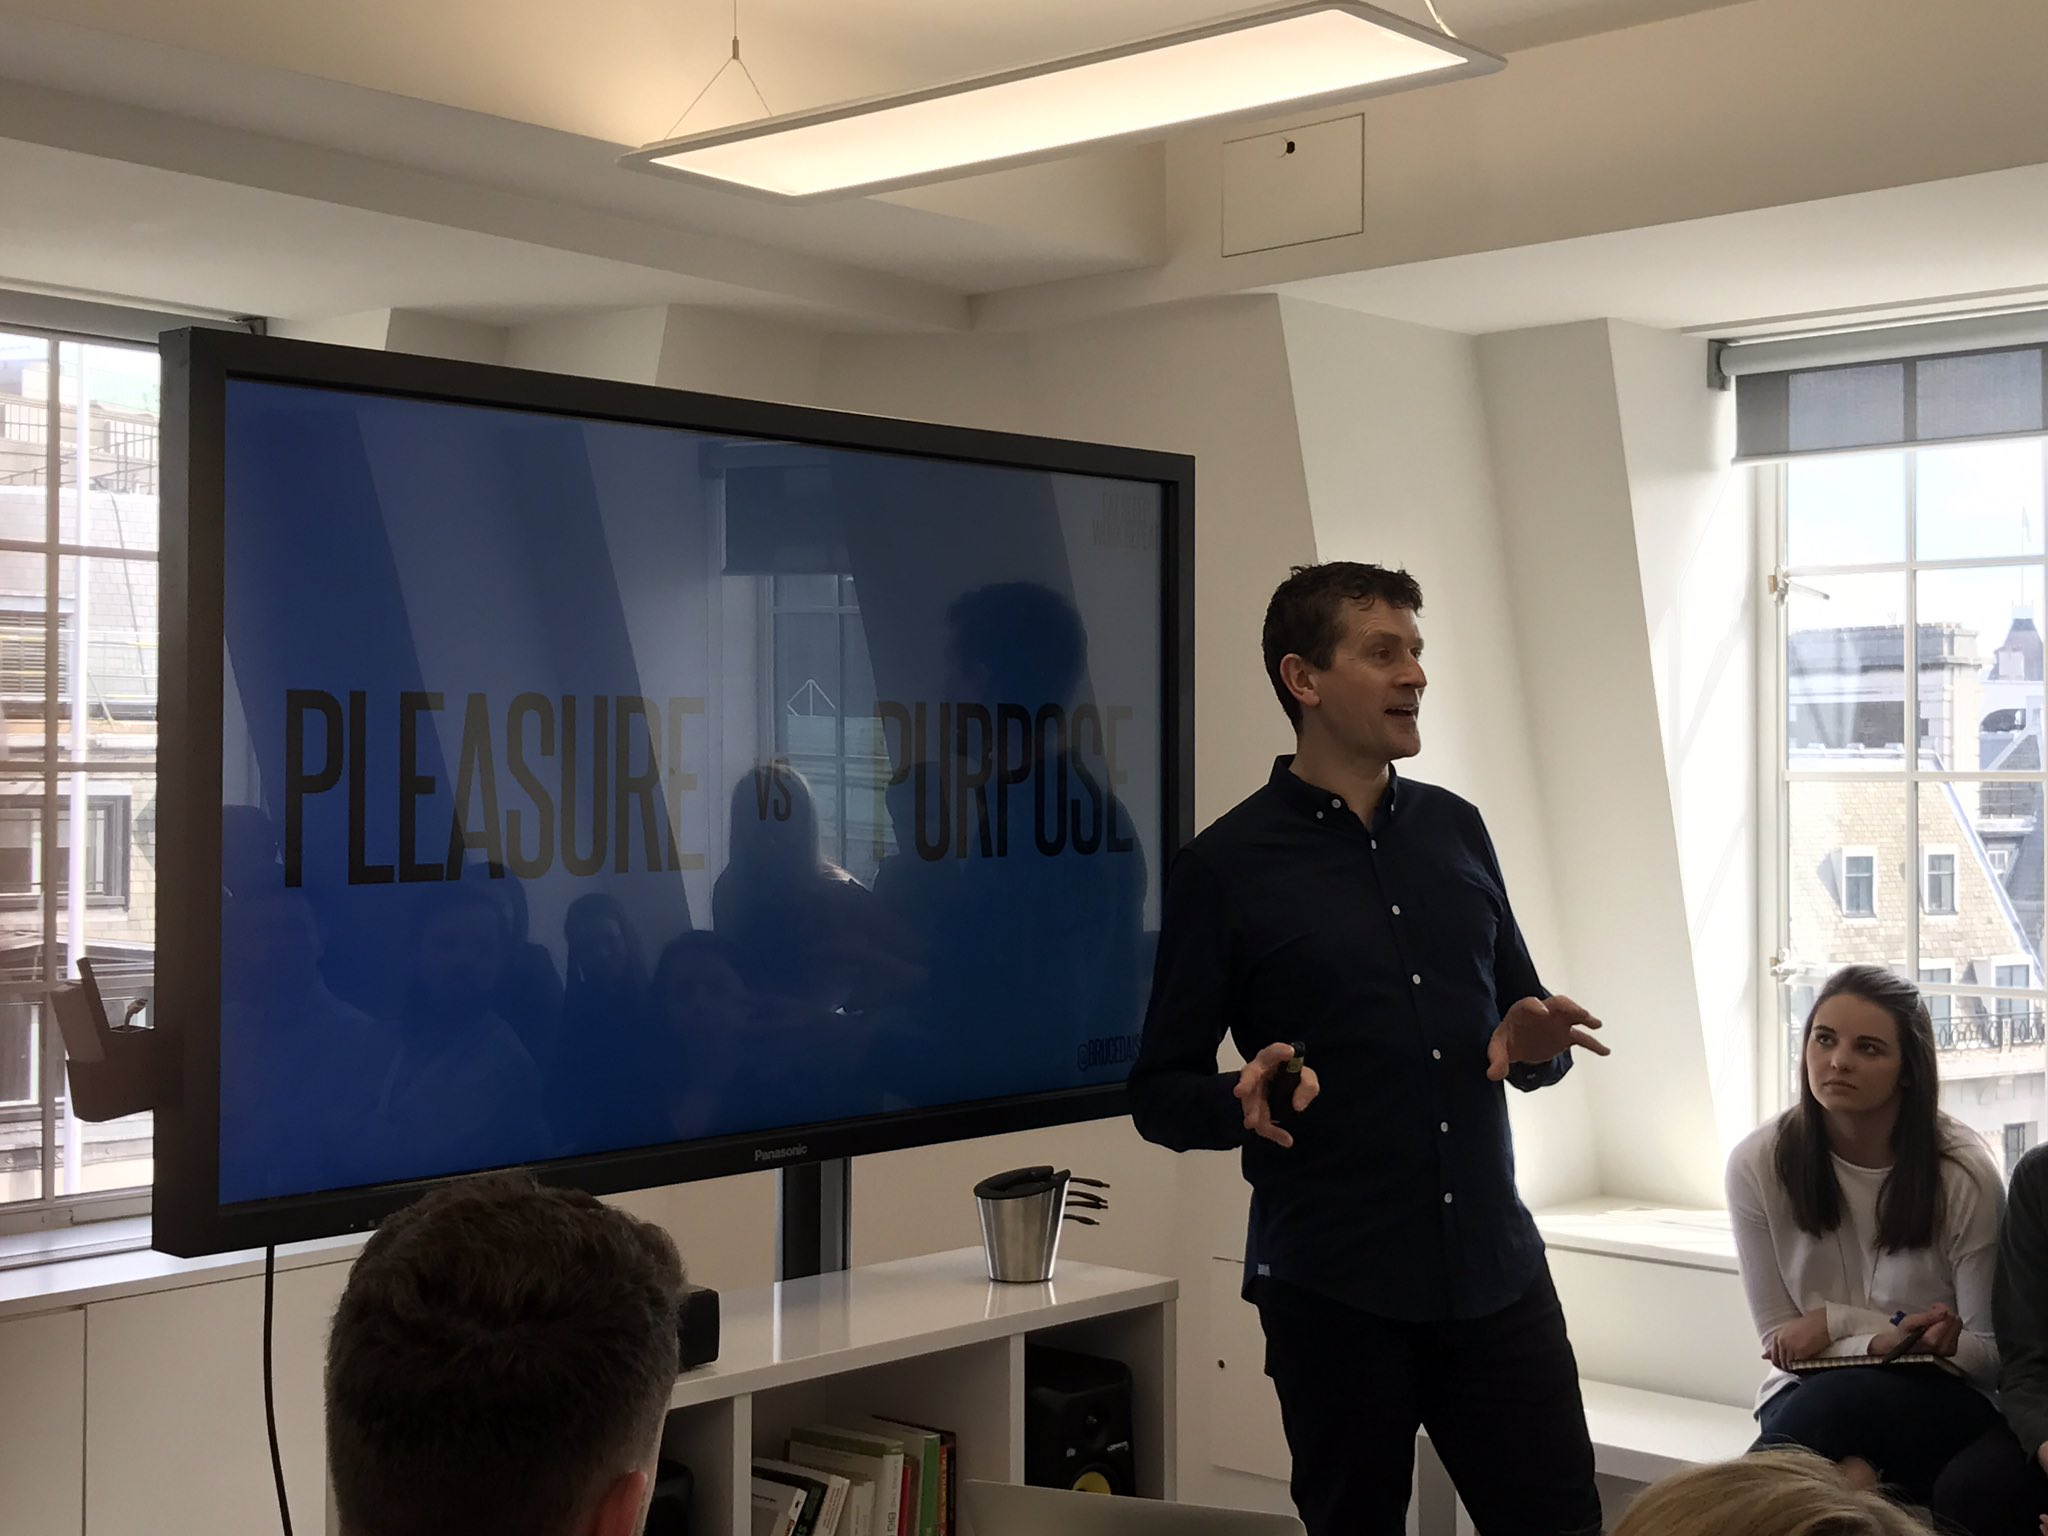 RT @mullinsarama: Fantastic chat from @brucedaisley about work and pleasure vs purpose. #pap  @the7stars https://t.co/iG0JZRFeDj